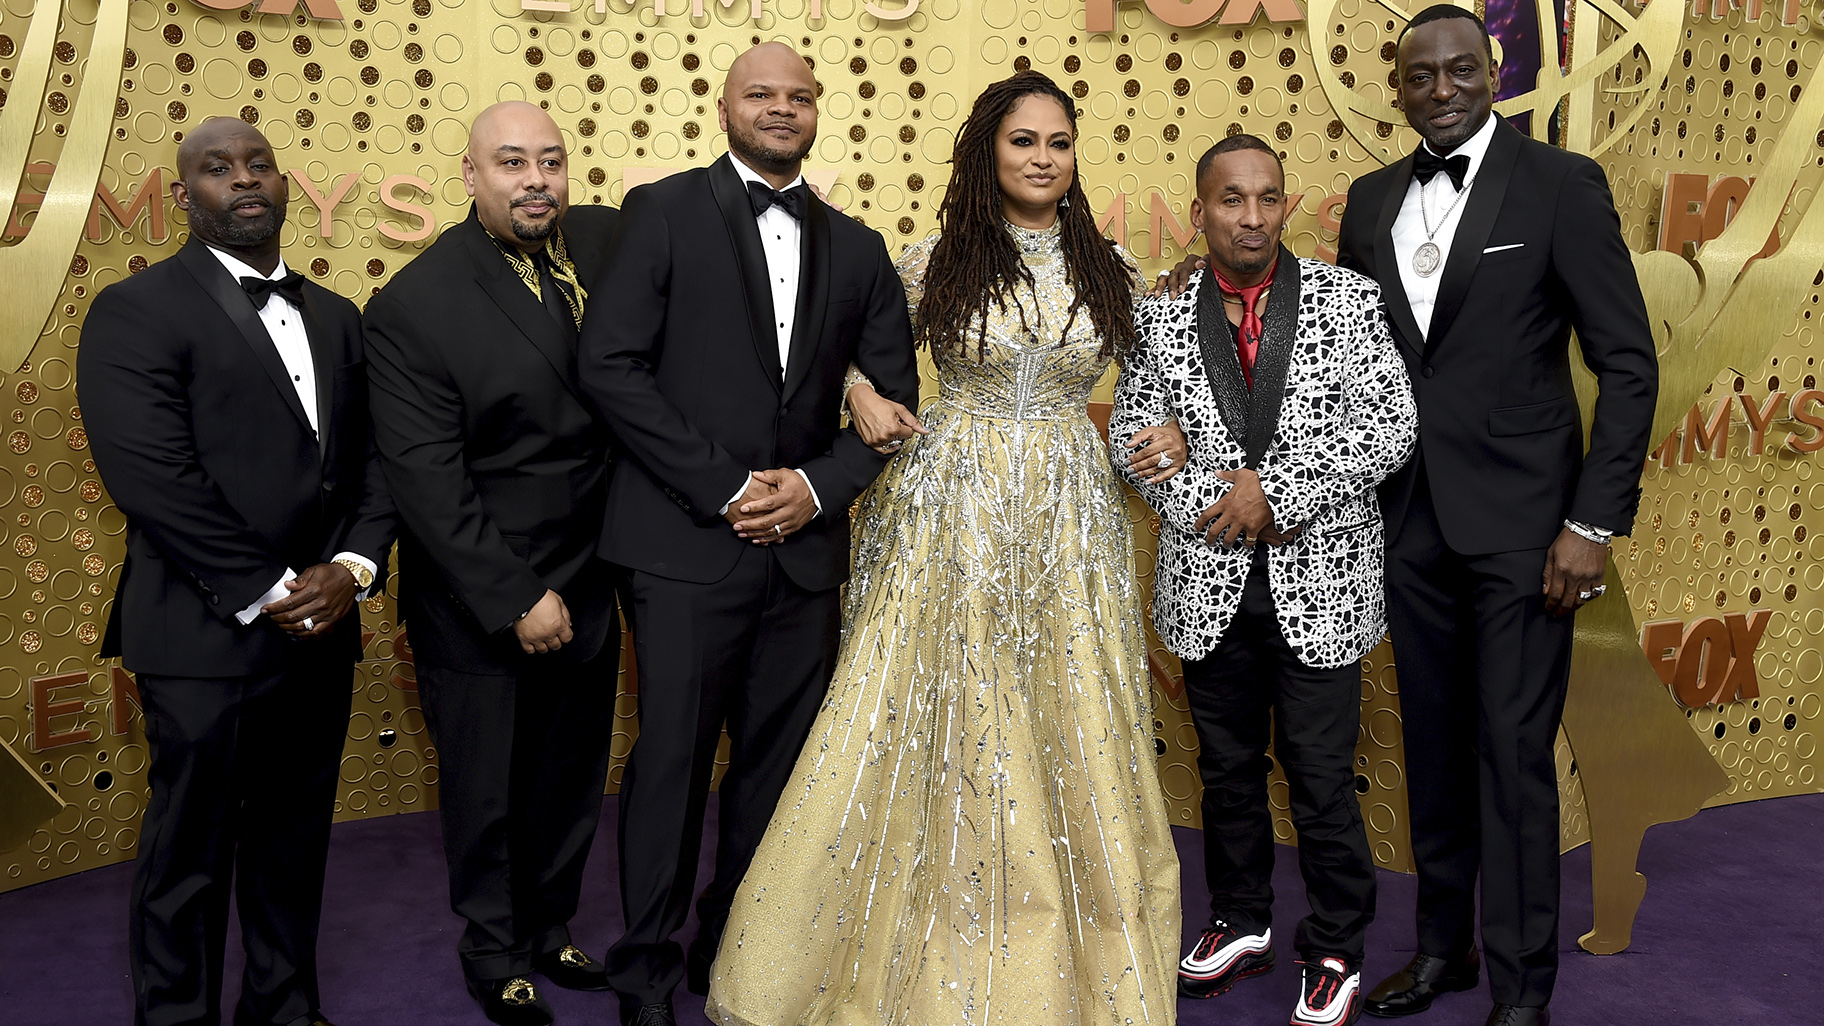 Ava DuVernay, center, is joined by Antron McCray, Raymond Santana, Kevin Richardson, Korey Wise and Yusef Salaam, of the Central Park Five, during arrivals of the 71st Primetime Emmy Awards on Sunday, Sept. 22, 2019, at the Microsoft Theater in Los Angeles. (Photo by Jordan Strauss/Invision/AP)